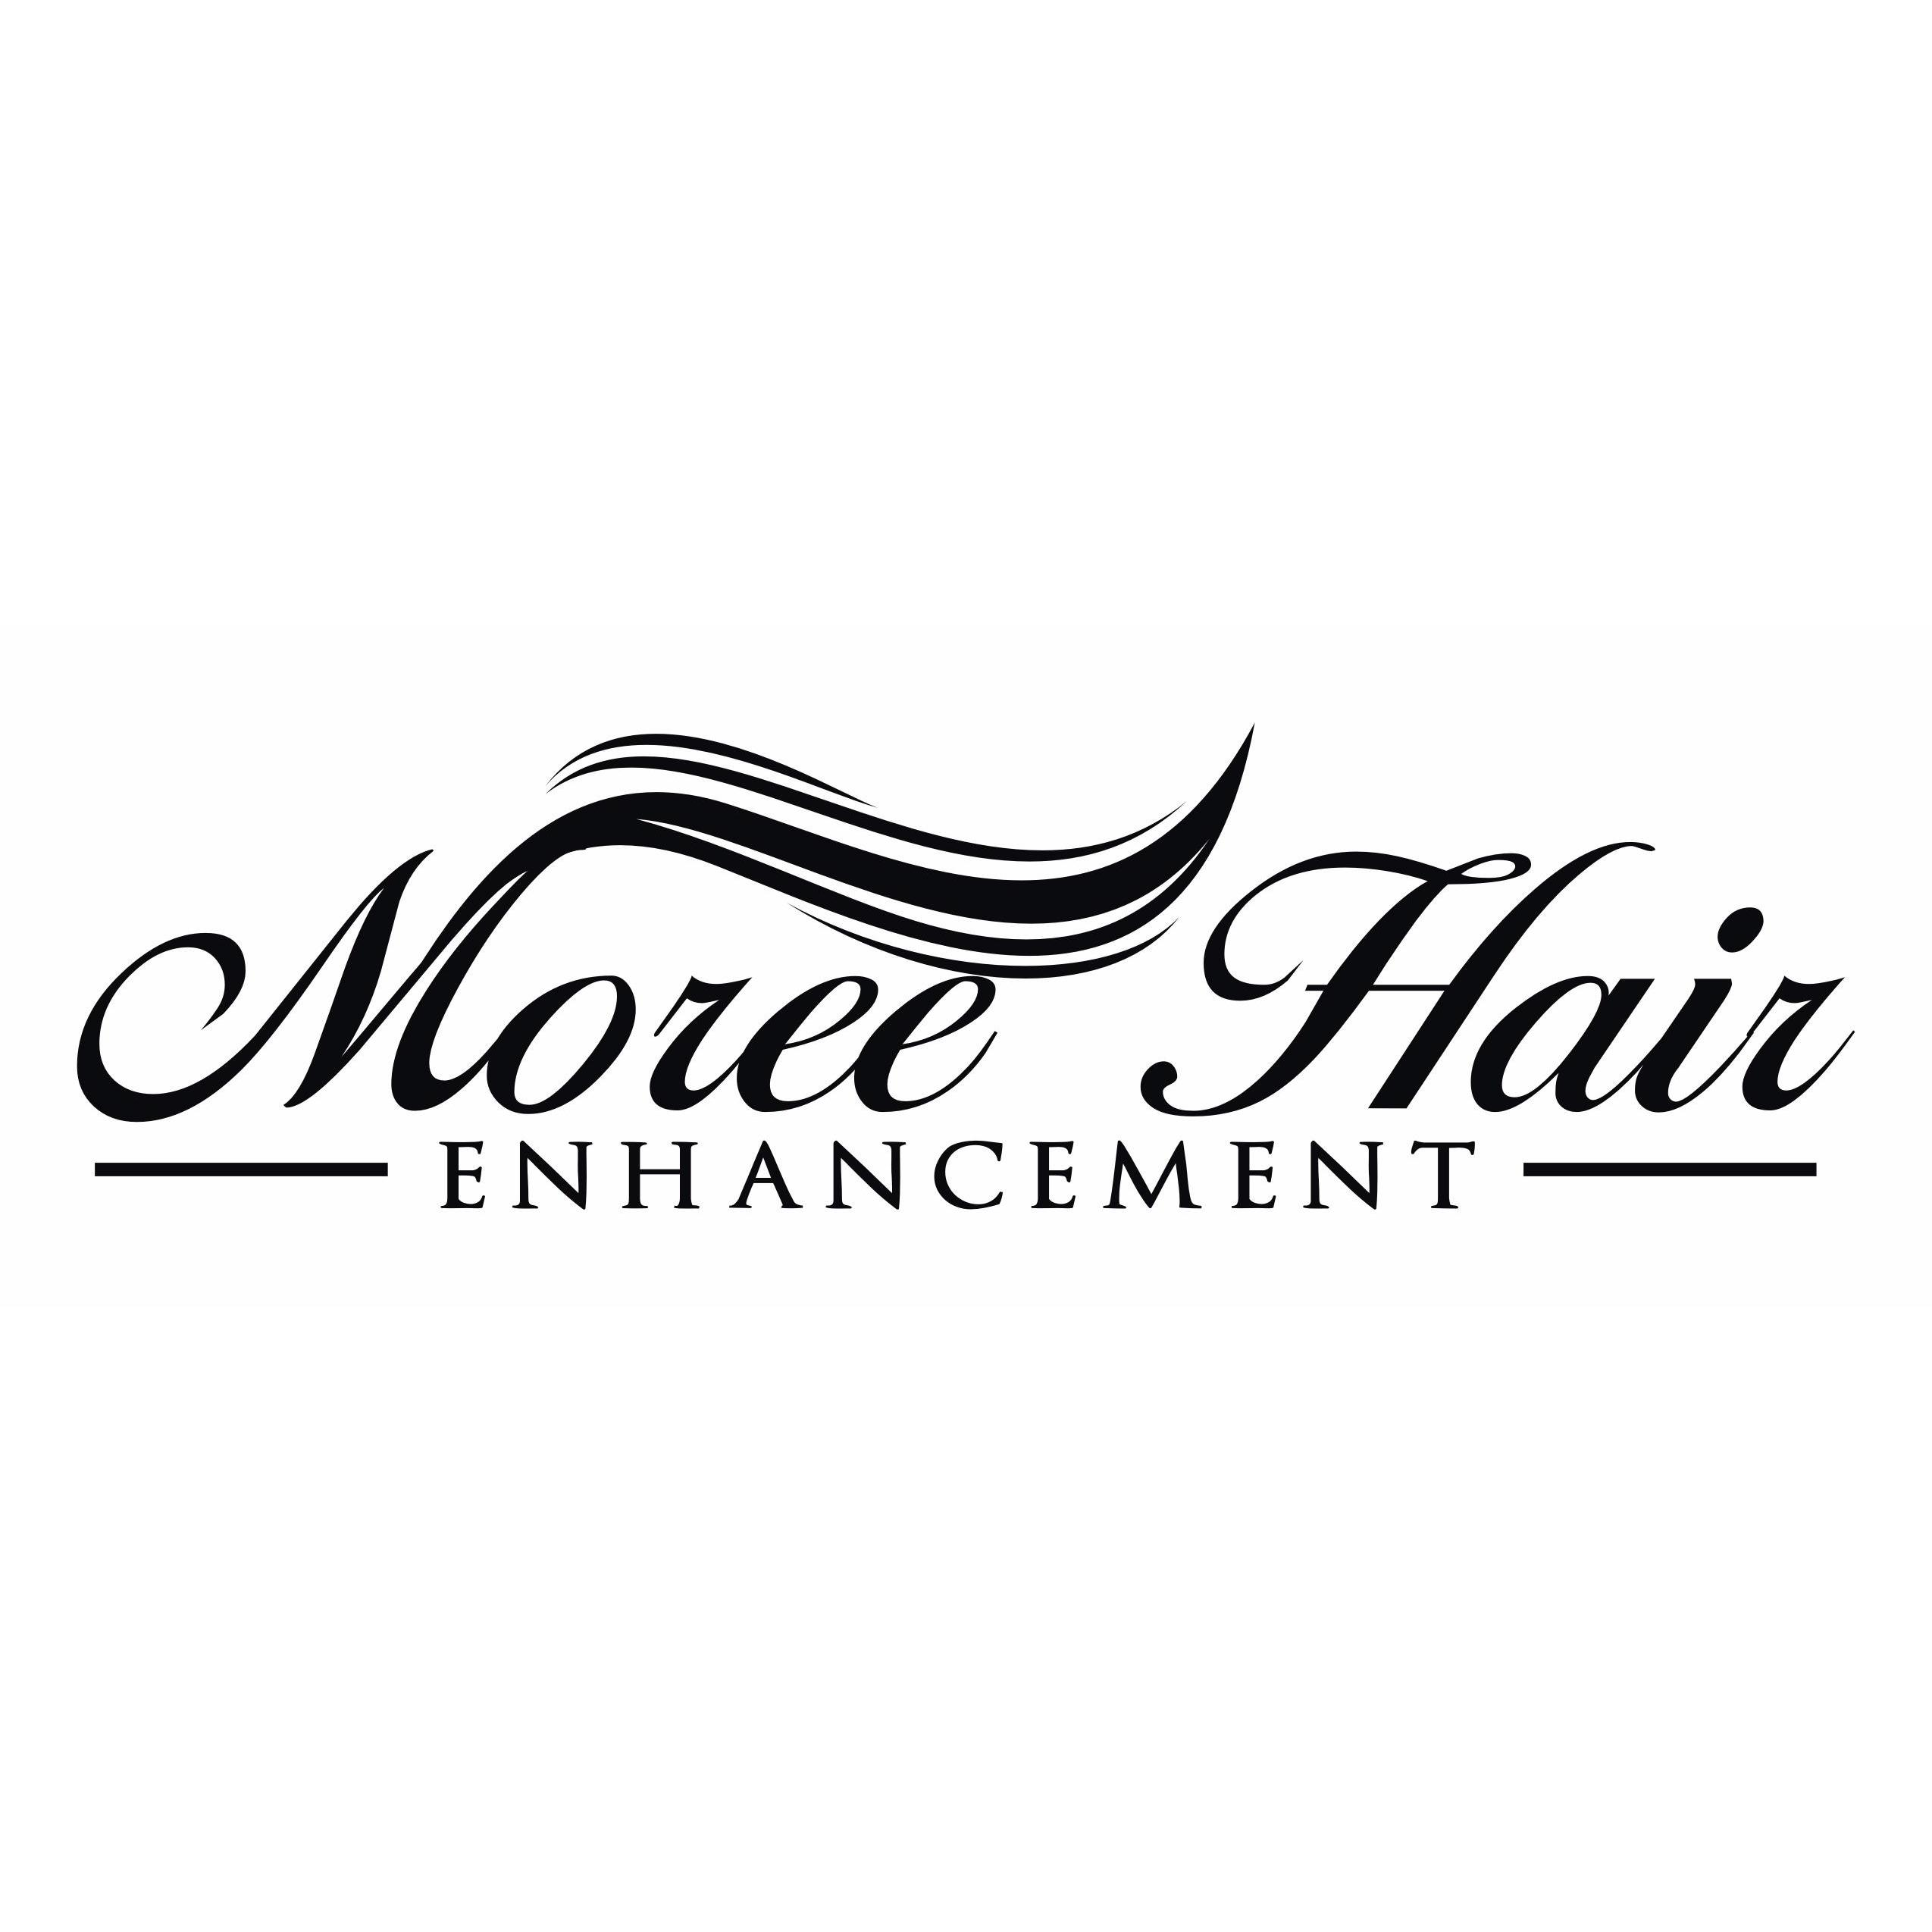 Moree Hair Extensions